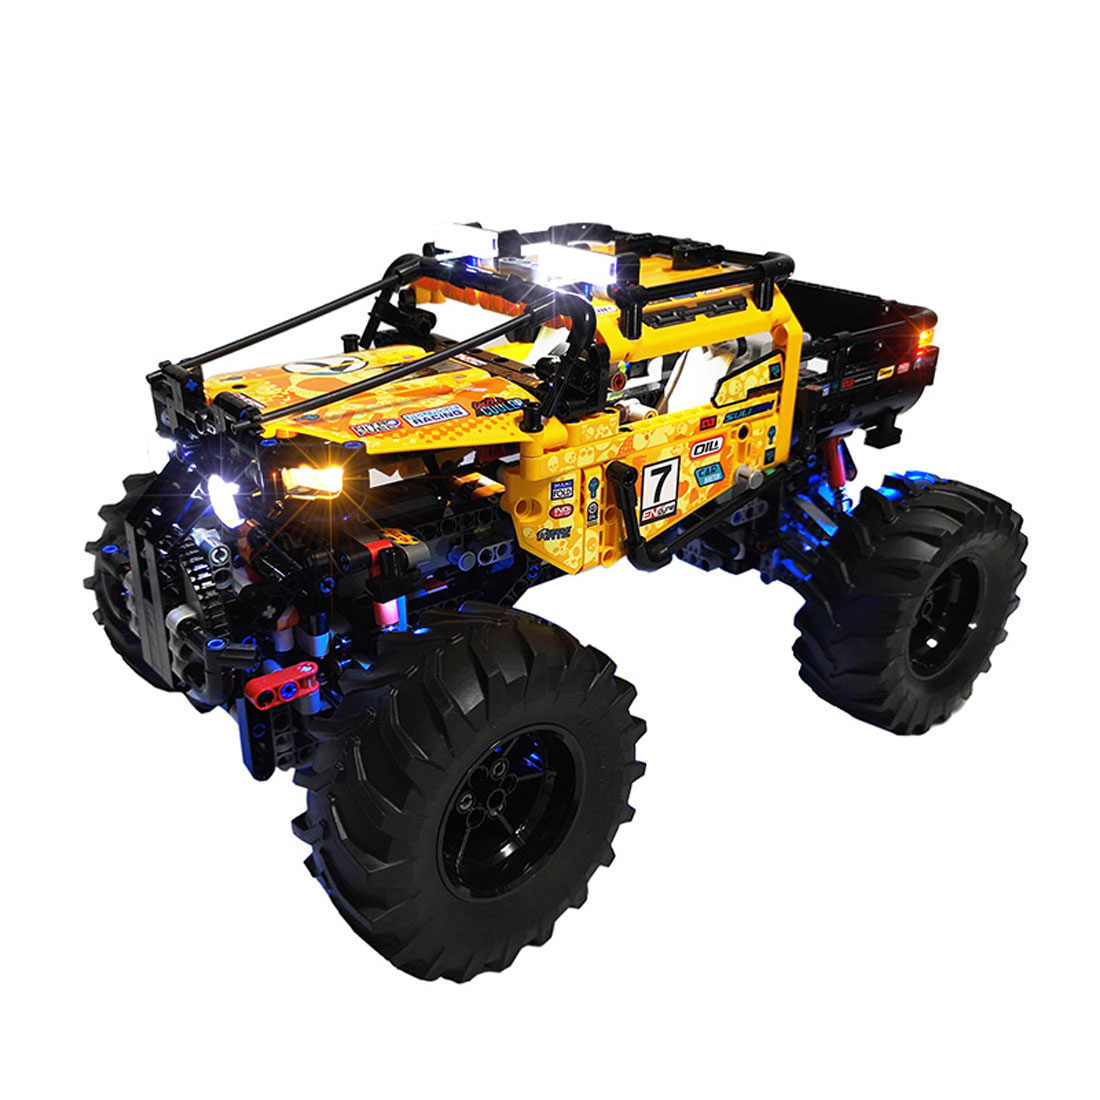 Batteria al litio Alimentato Kit di Illuminazione A LED per 4x4 X-treme Off-Roader 42099 (LED Incluso solo, no Kit)- RC Versione